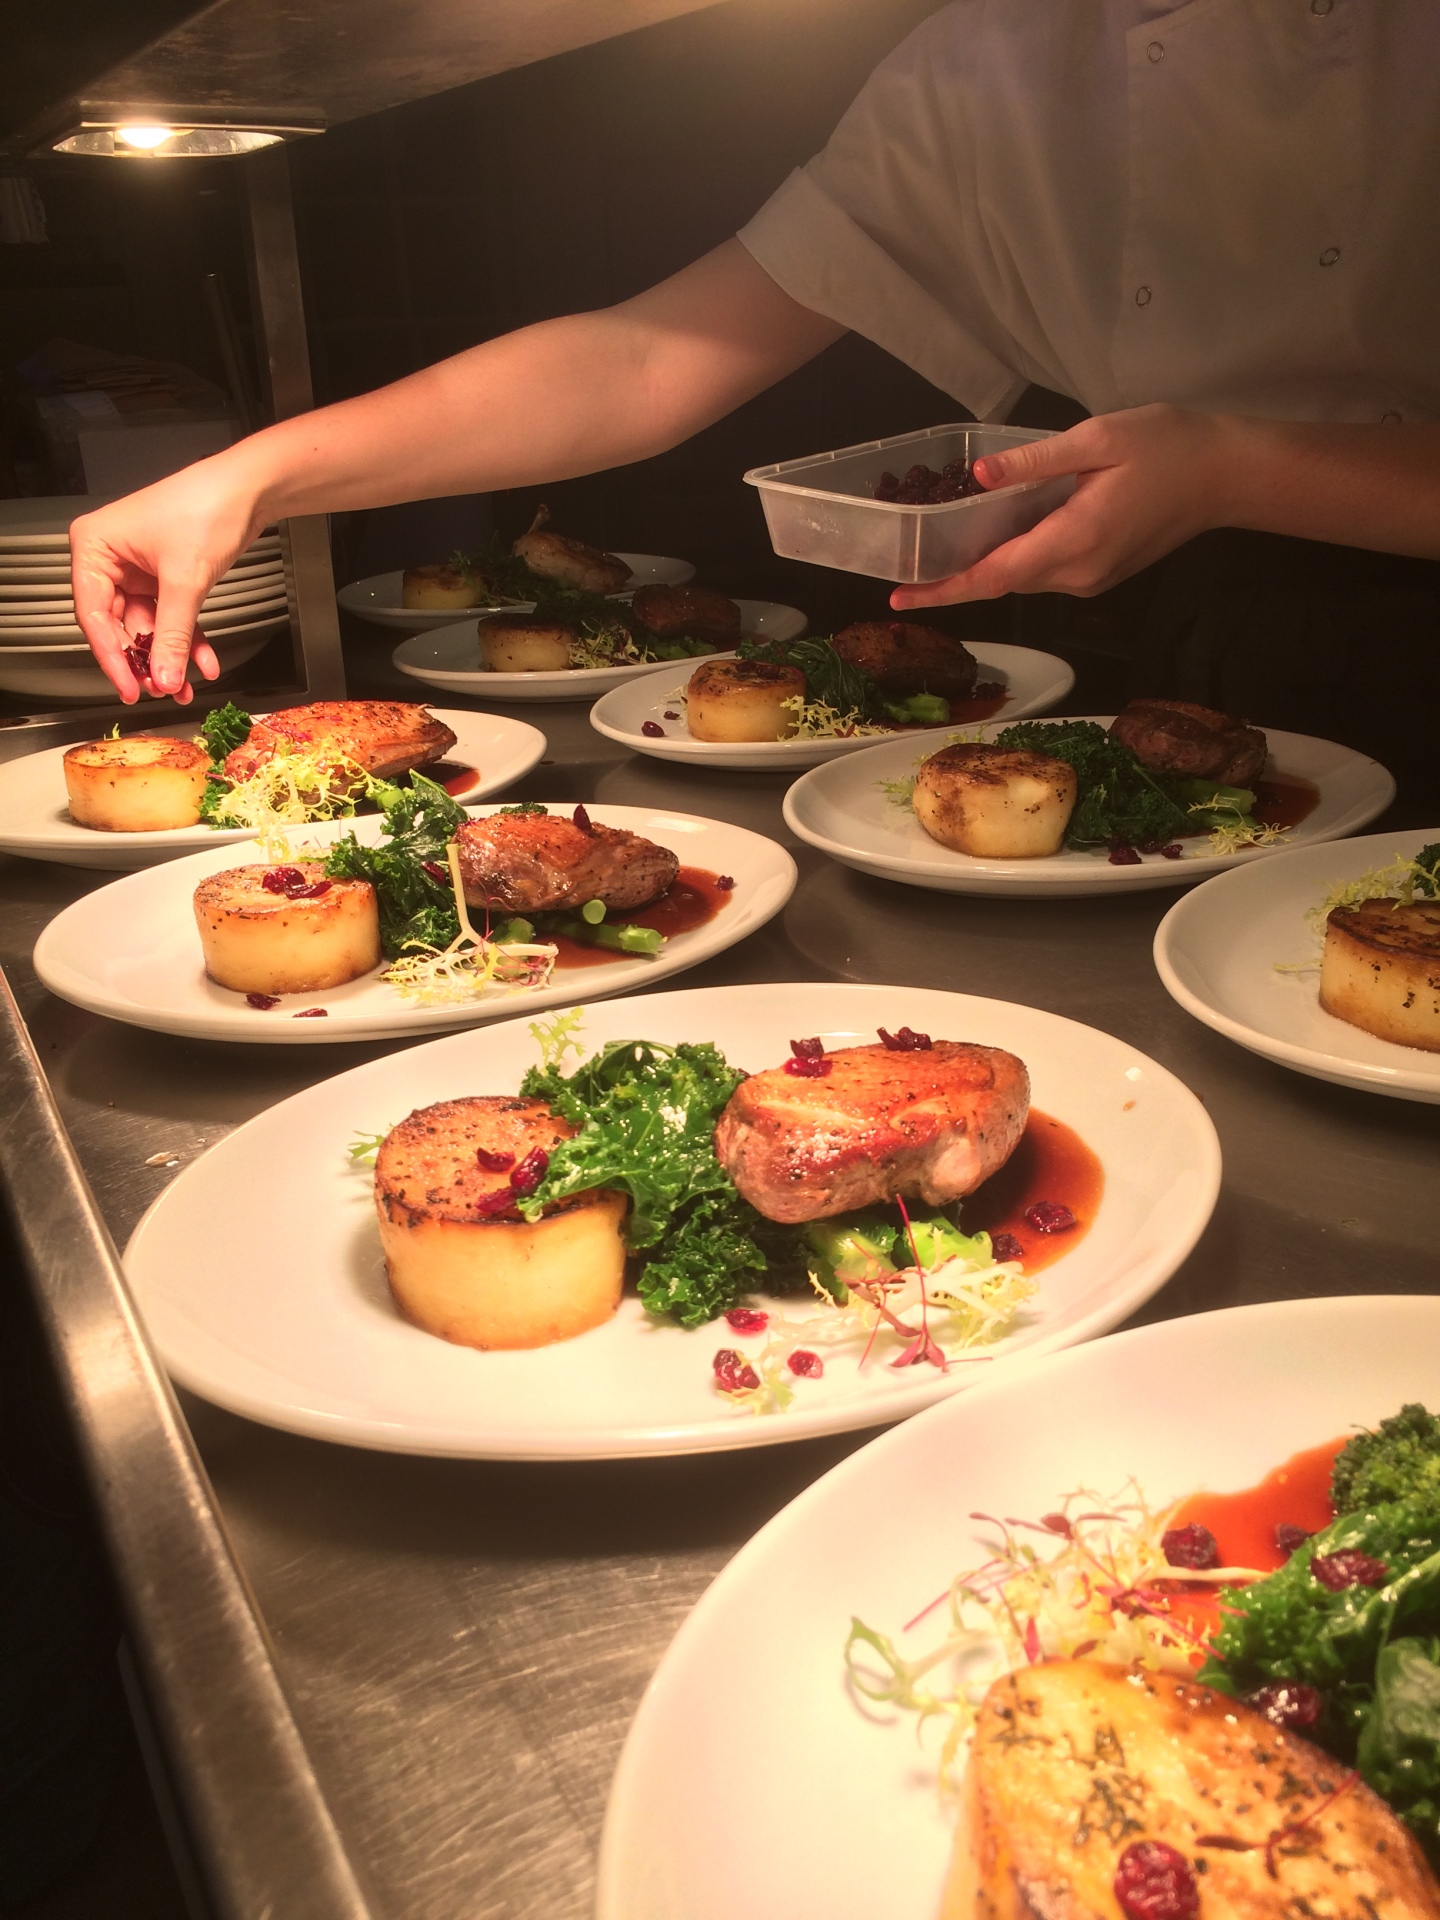 Plating up for service